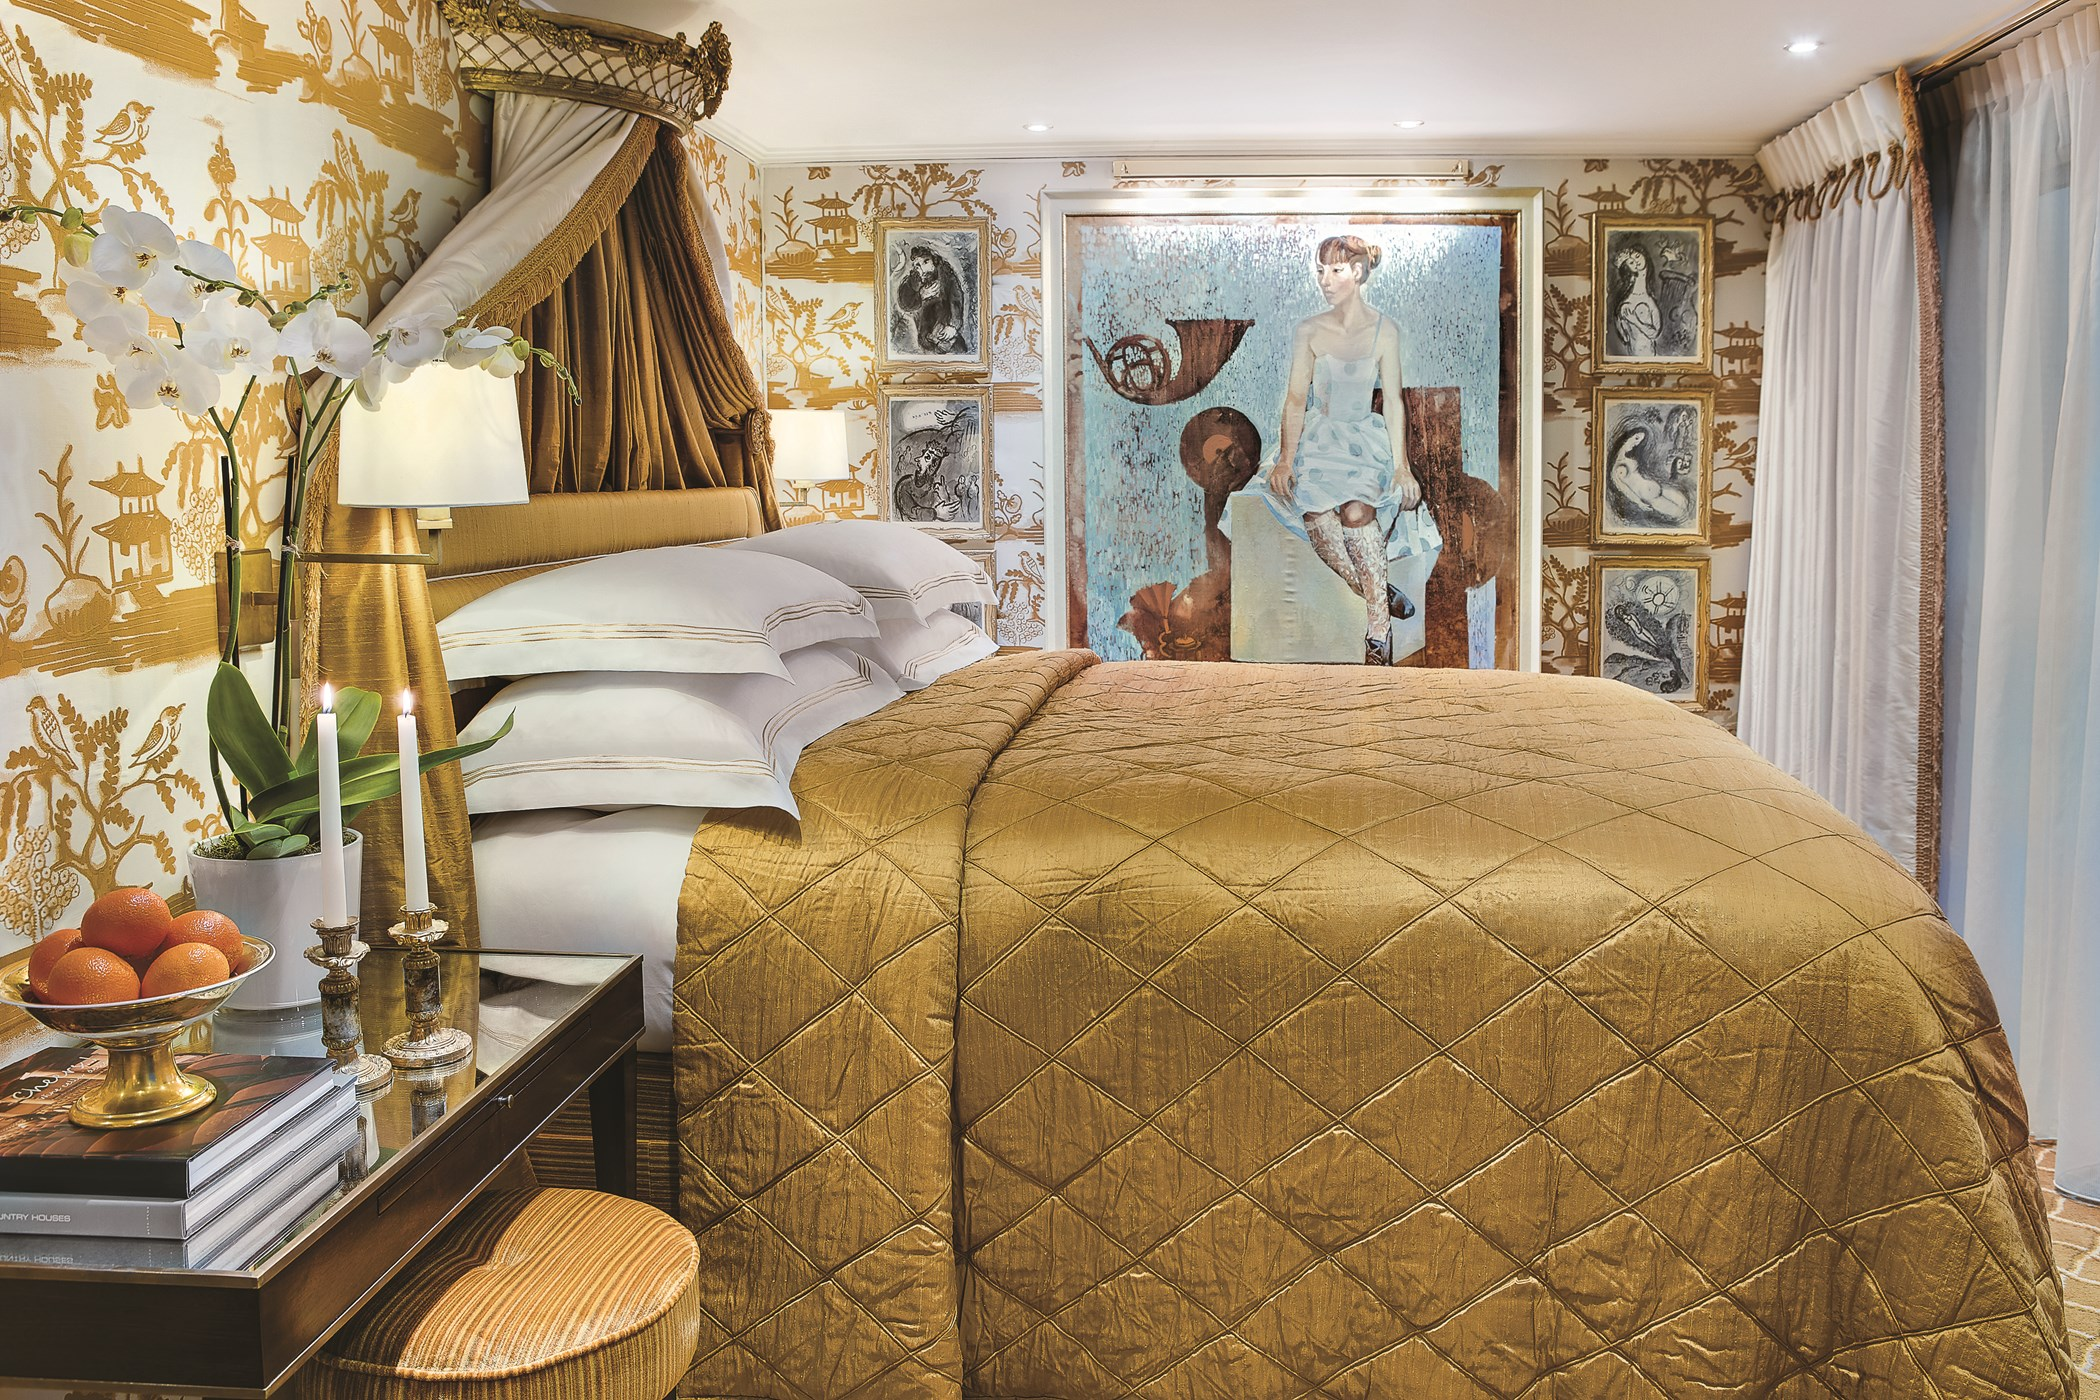 UNIWORLD Boutique River Cruises SS Catherine Accommodaion Suite 403 Bedroom.jpg